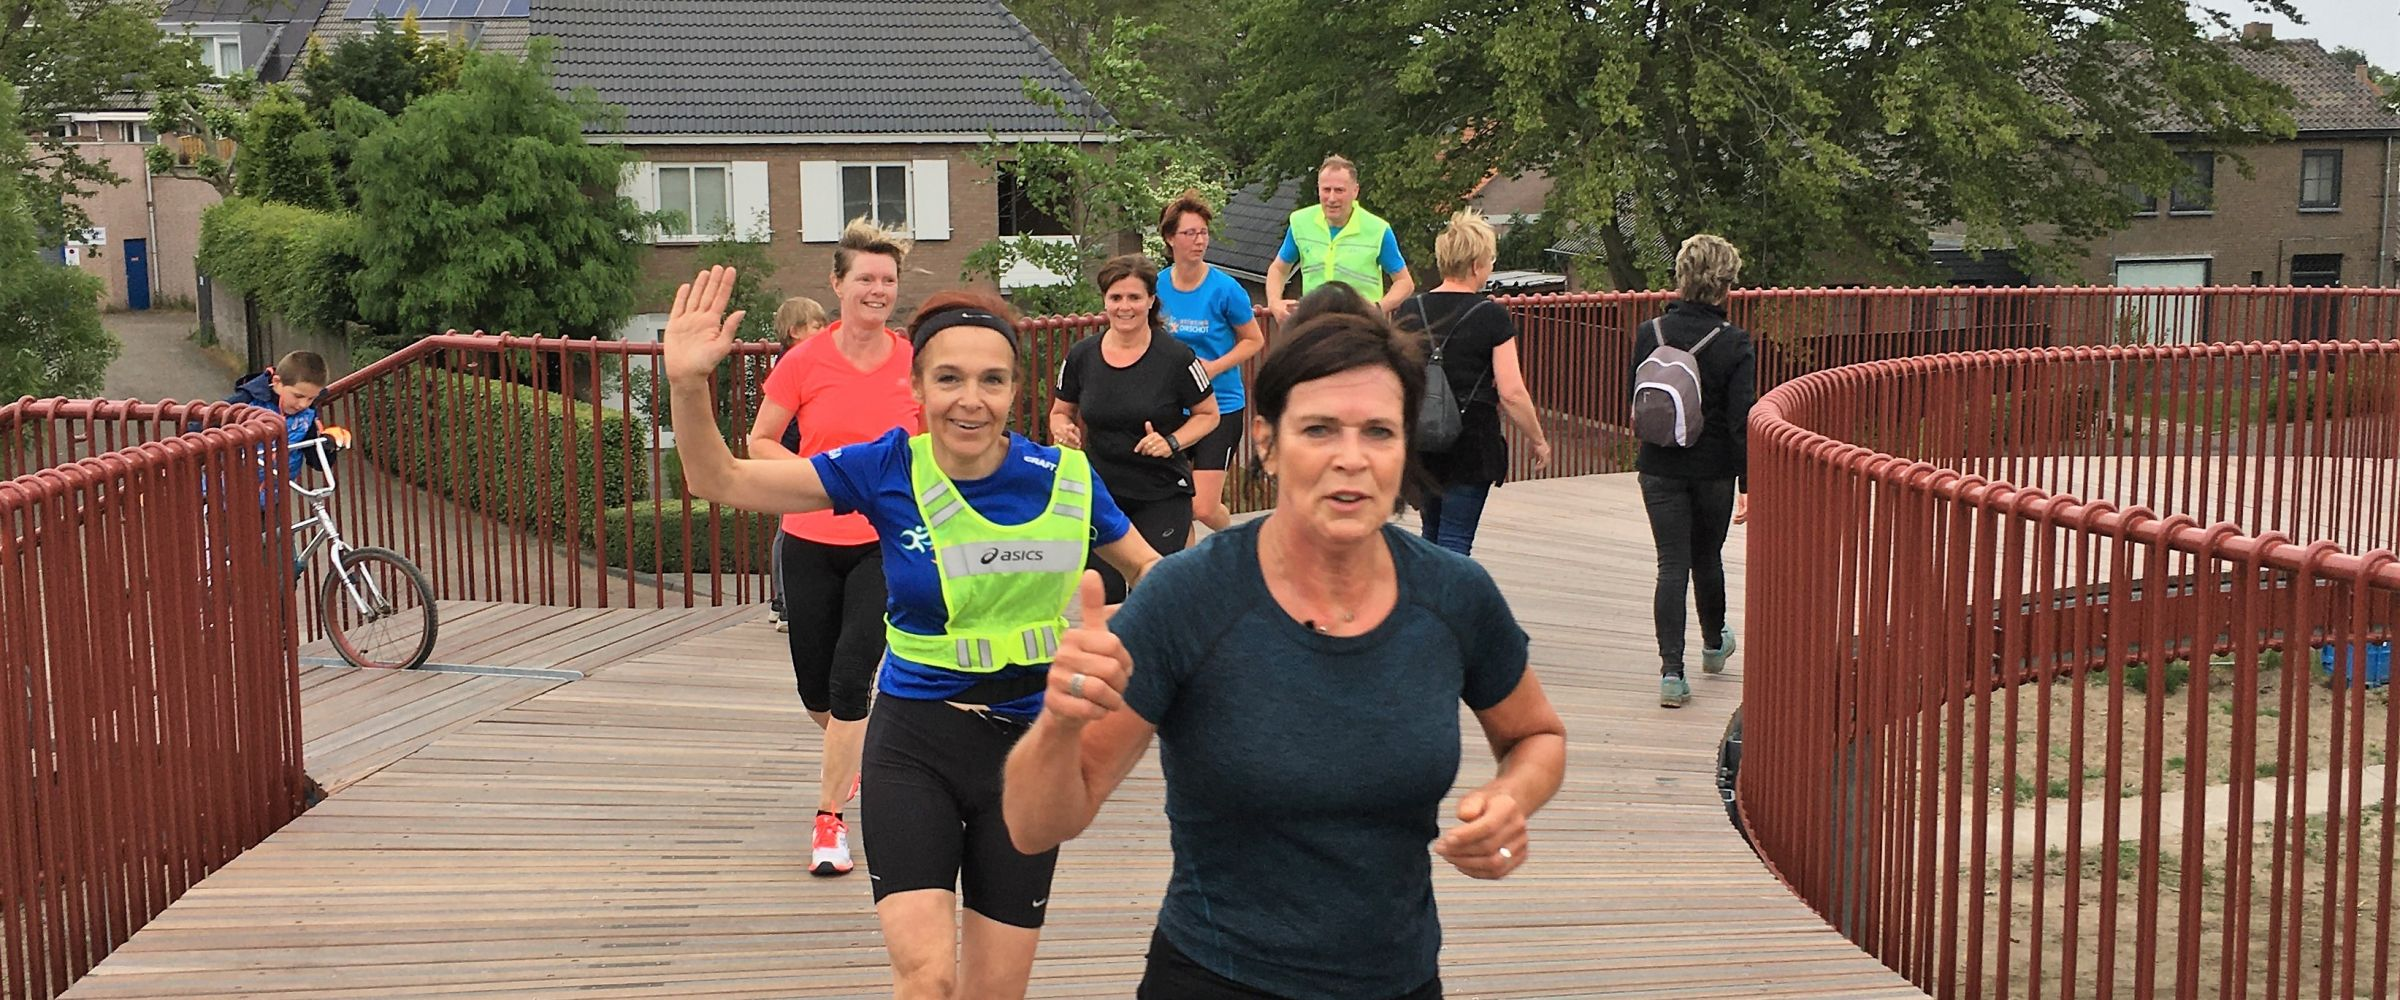 2020-05/2020-05-24-recreanten-ad-van-zelst-52-